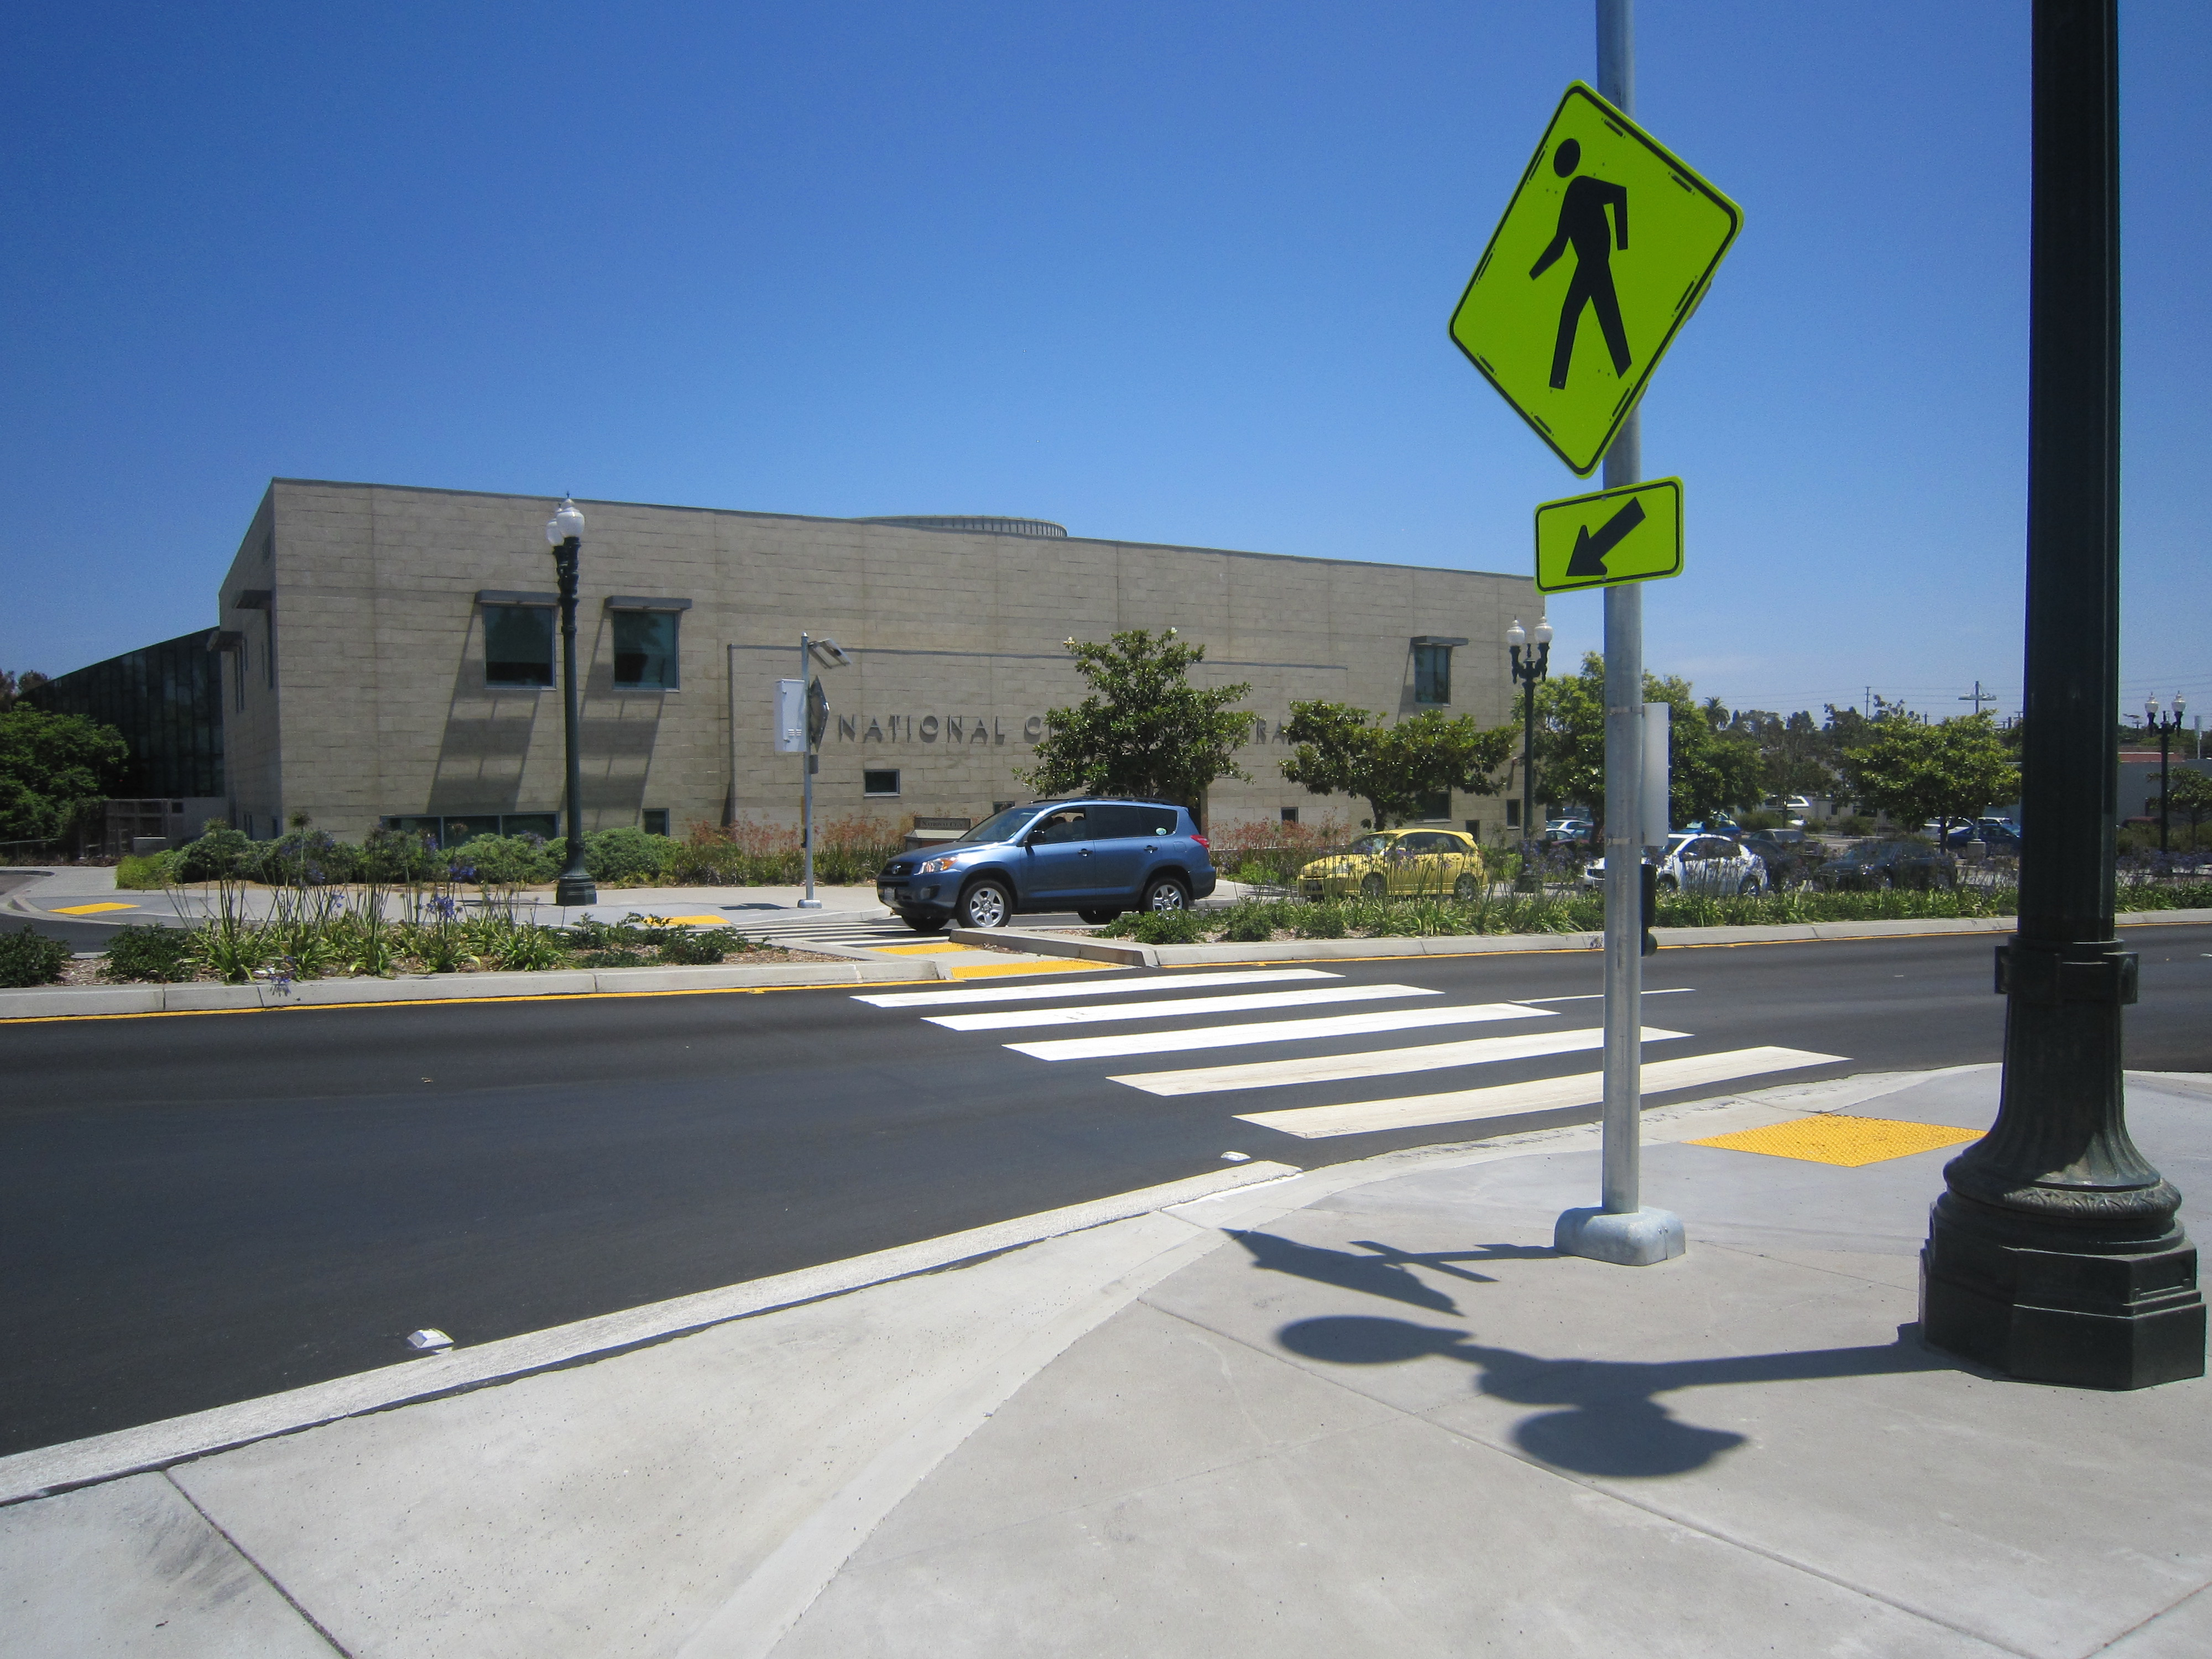 National_City_ped_activated_crosswalk_library_4.JPG